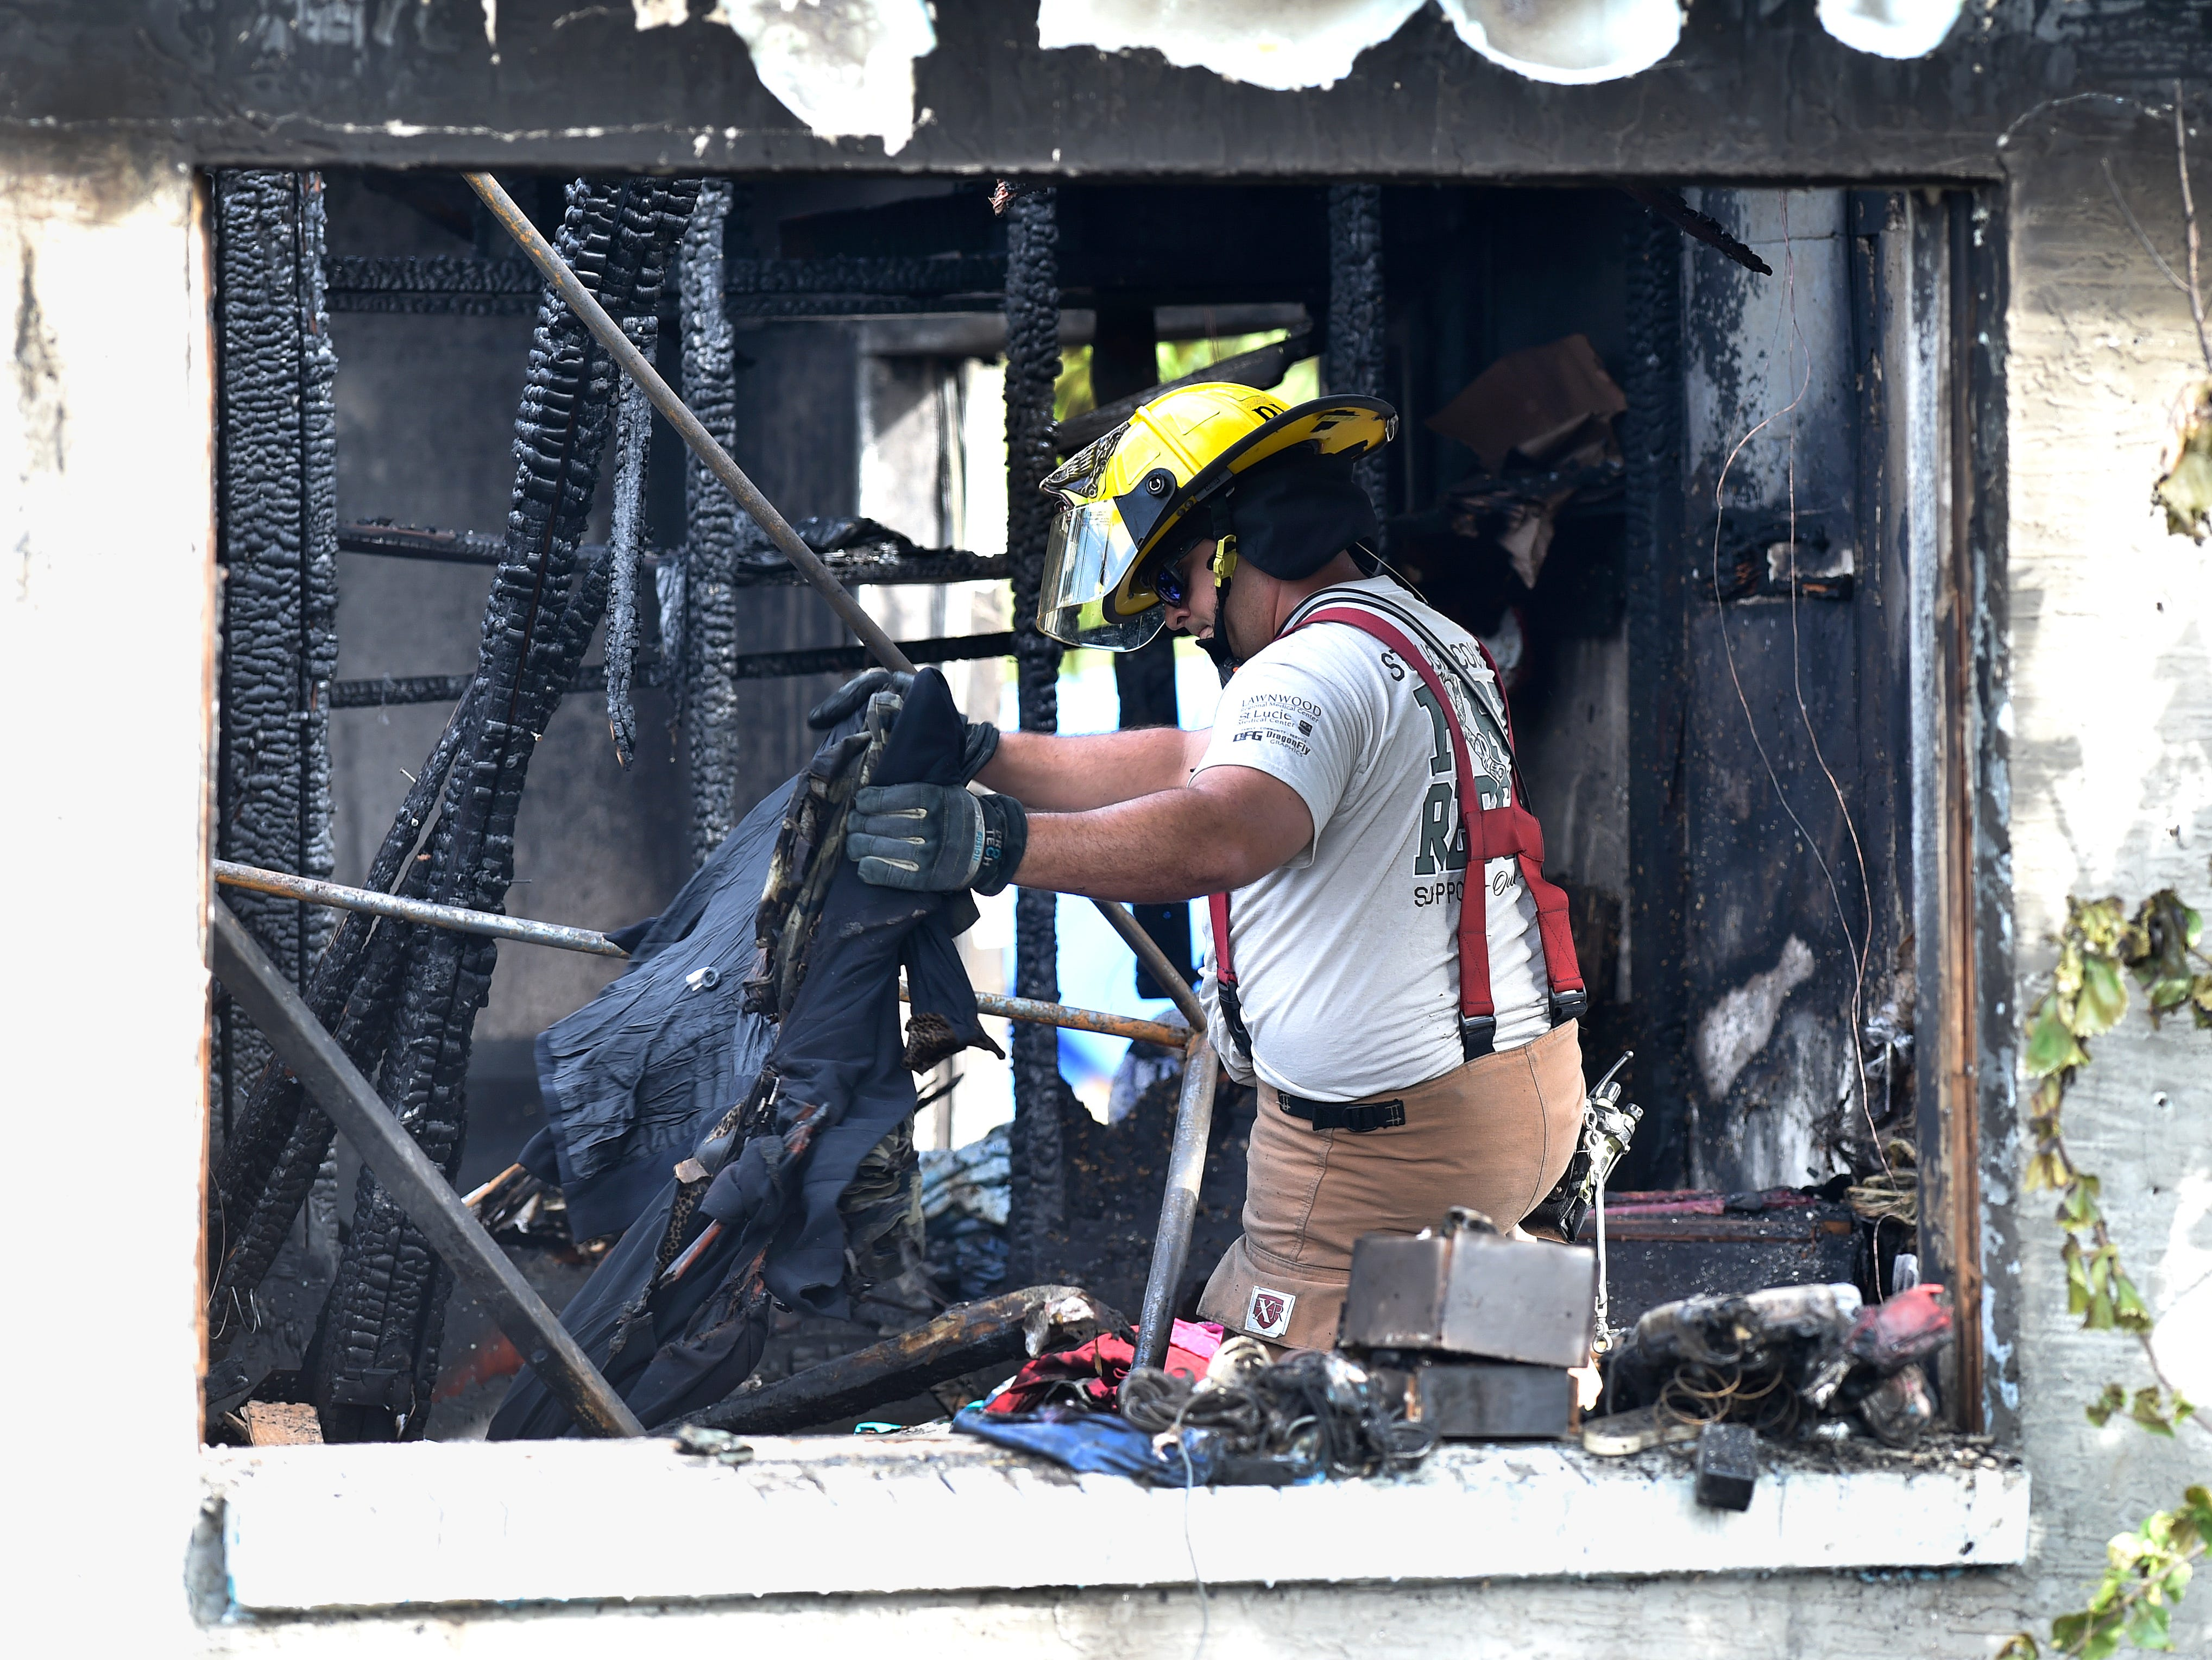 One of several St. Lucie County Fire District firefighters sorts through remains inside a home in the 2800 block of Avenue B on Friday, Nov. 30, 2018, during the investigation of the fire that completely destroyed the house shortly after 2 a.m., in Fort Pierce.